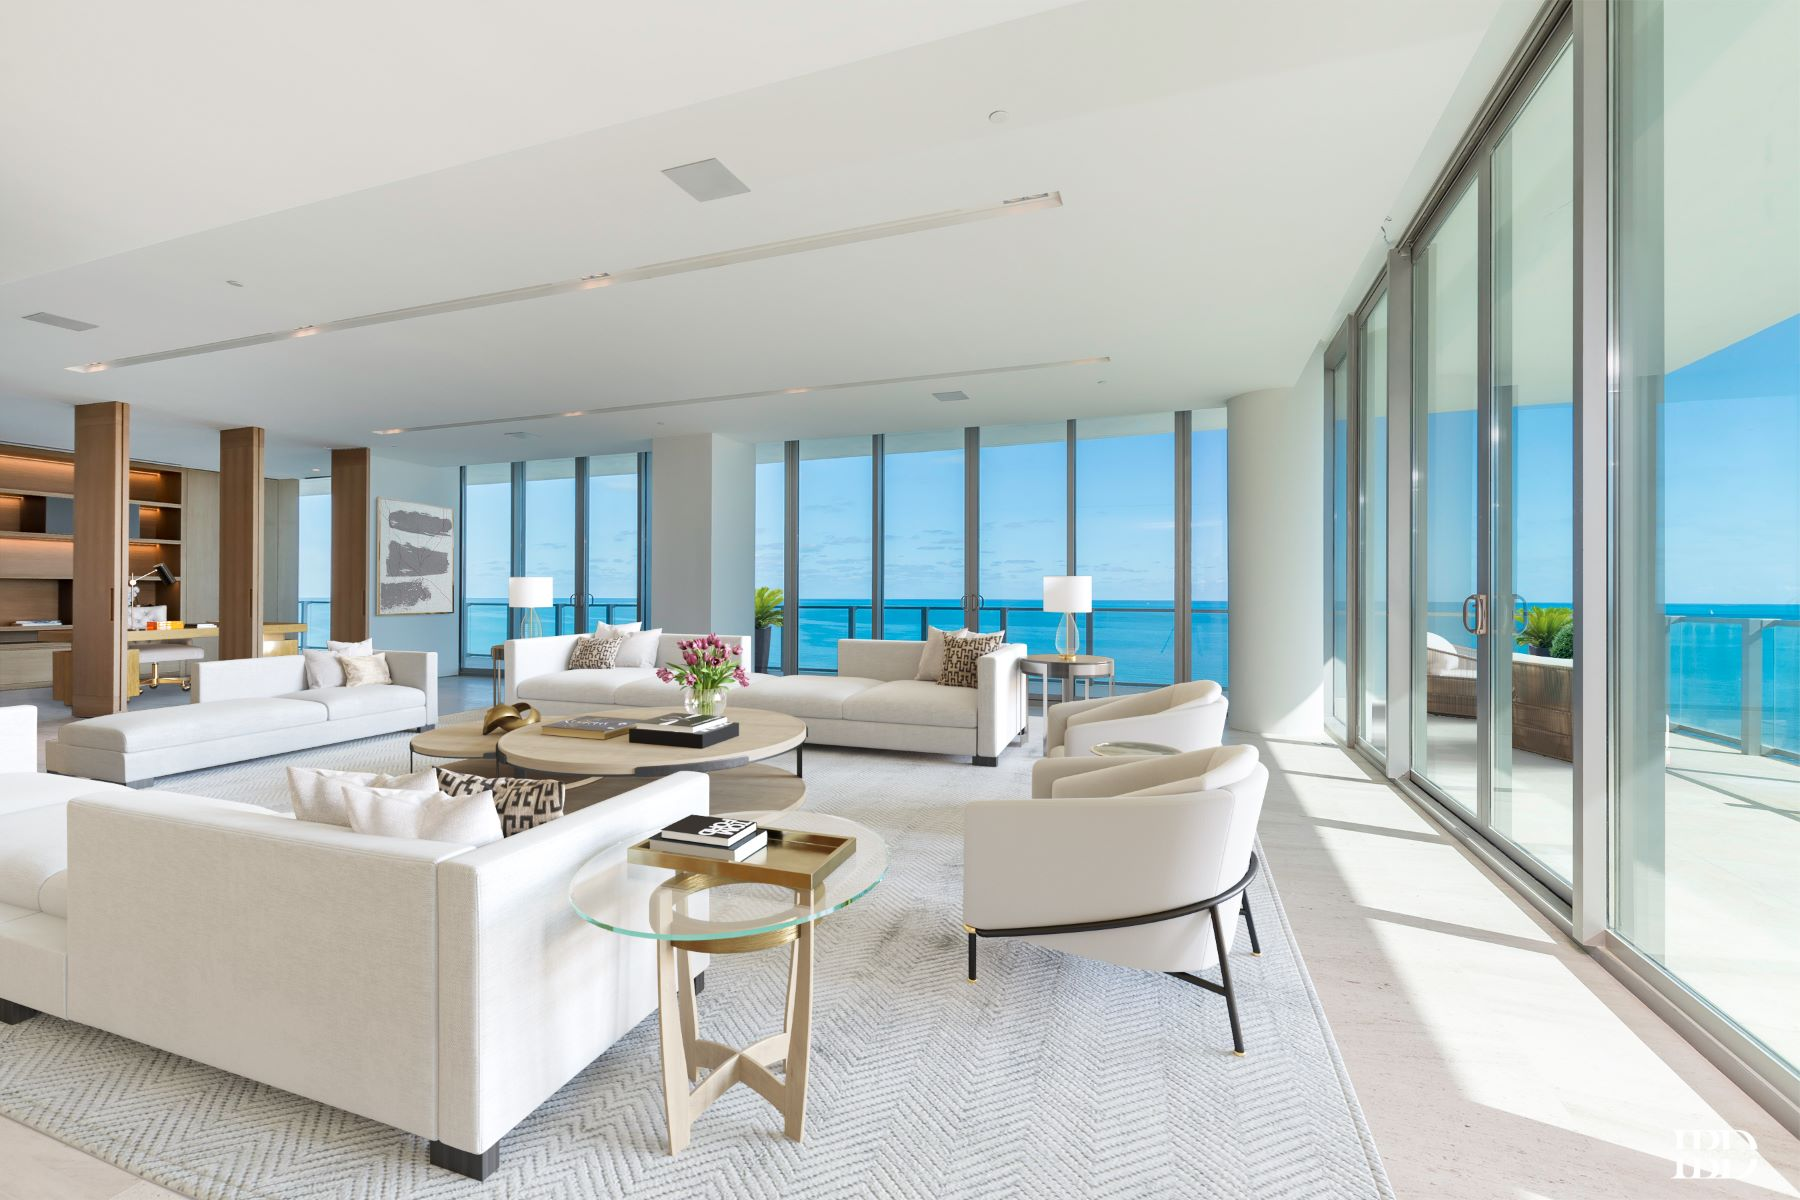 Condominium for Sale at 360 Ocean Dr 360 Ocean Dr PH1S Miami, Florida 33149 United States